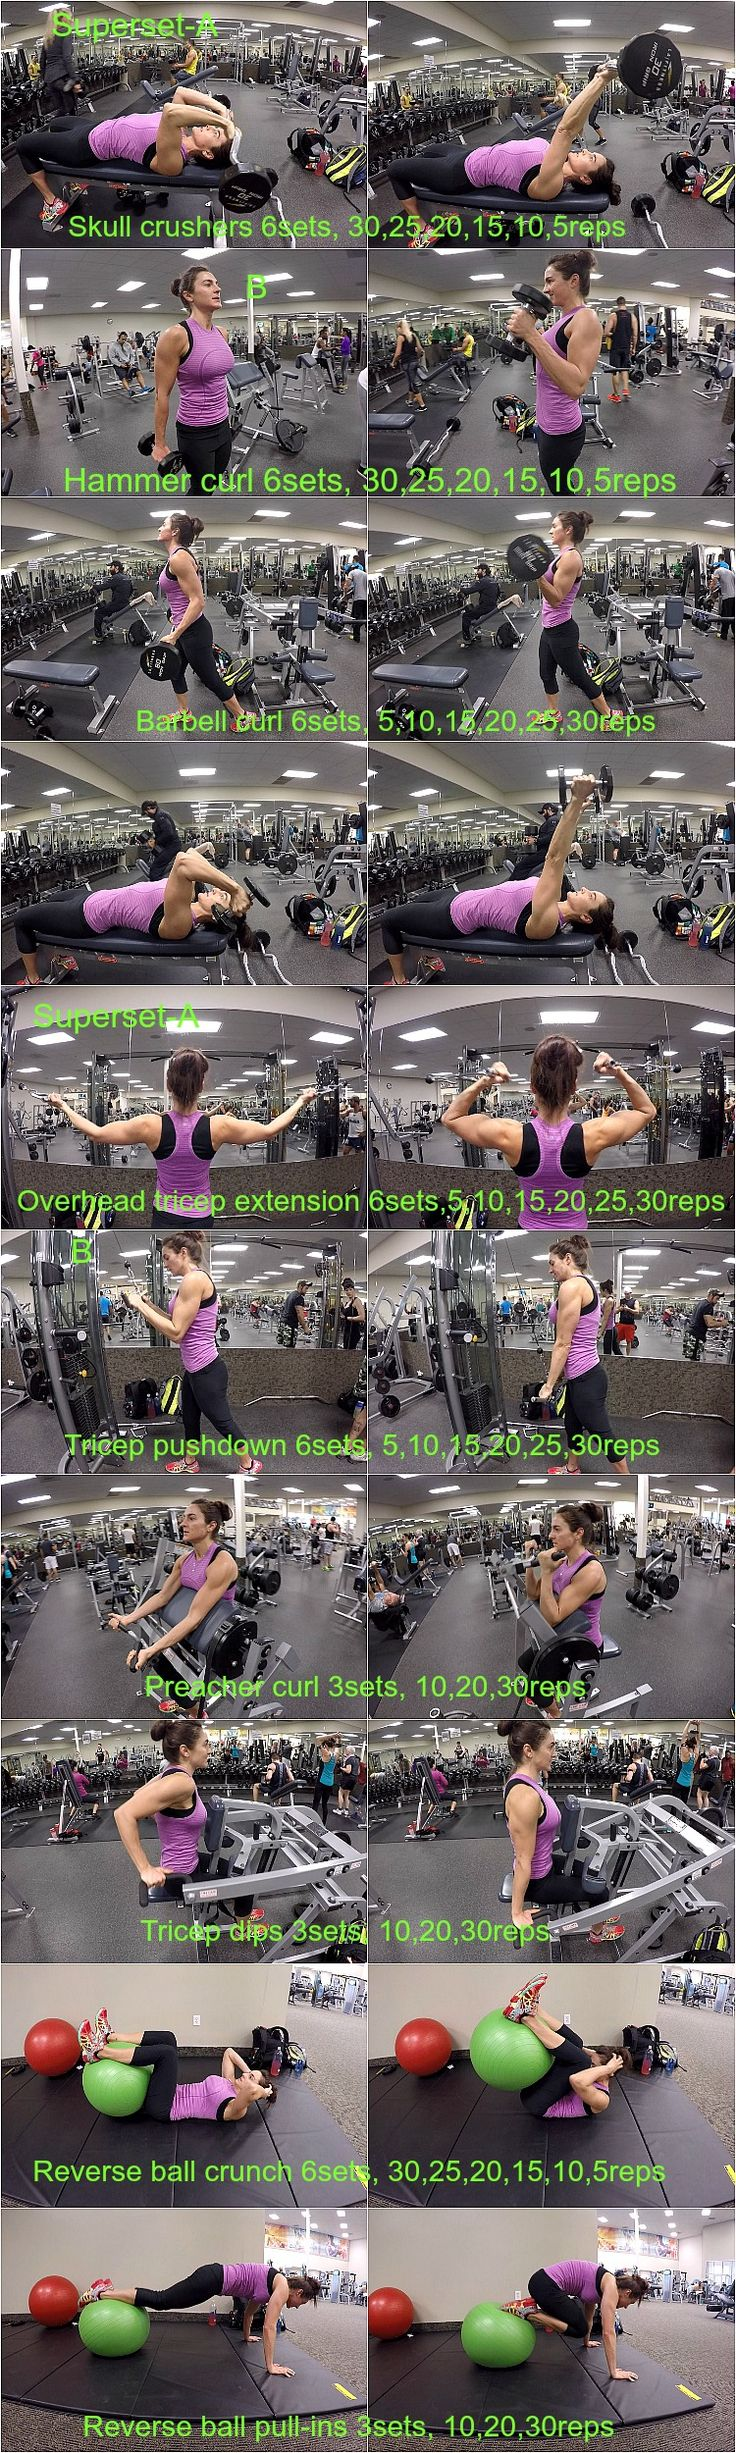 10 WEEKS TO FITNESS-DAY 39: BICEPS/TRICEPS/ABS